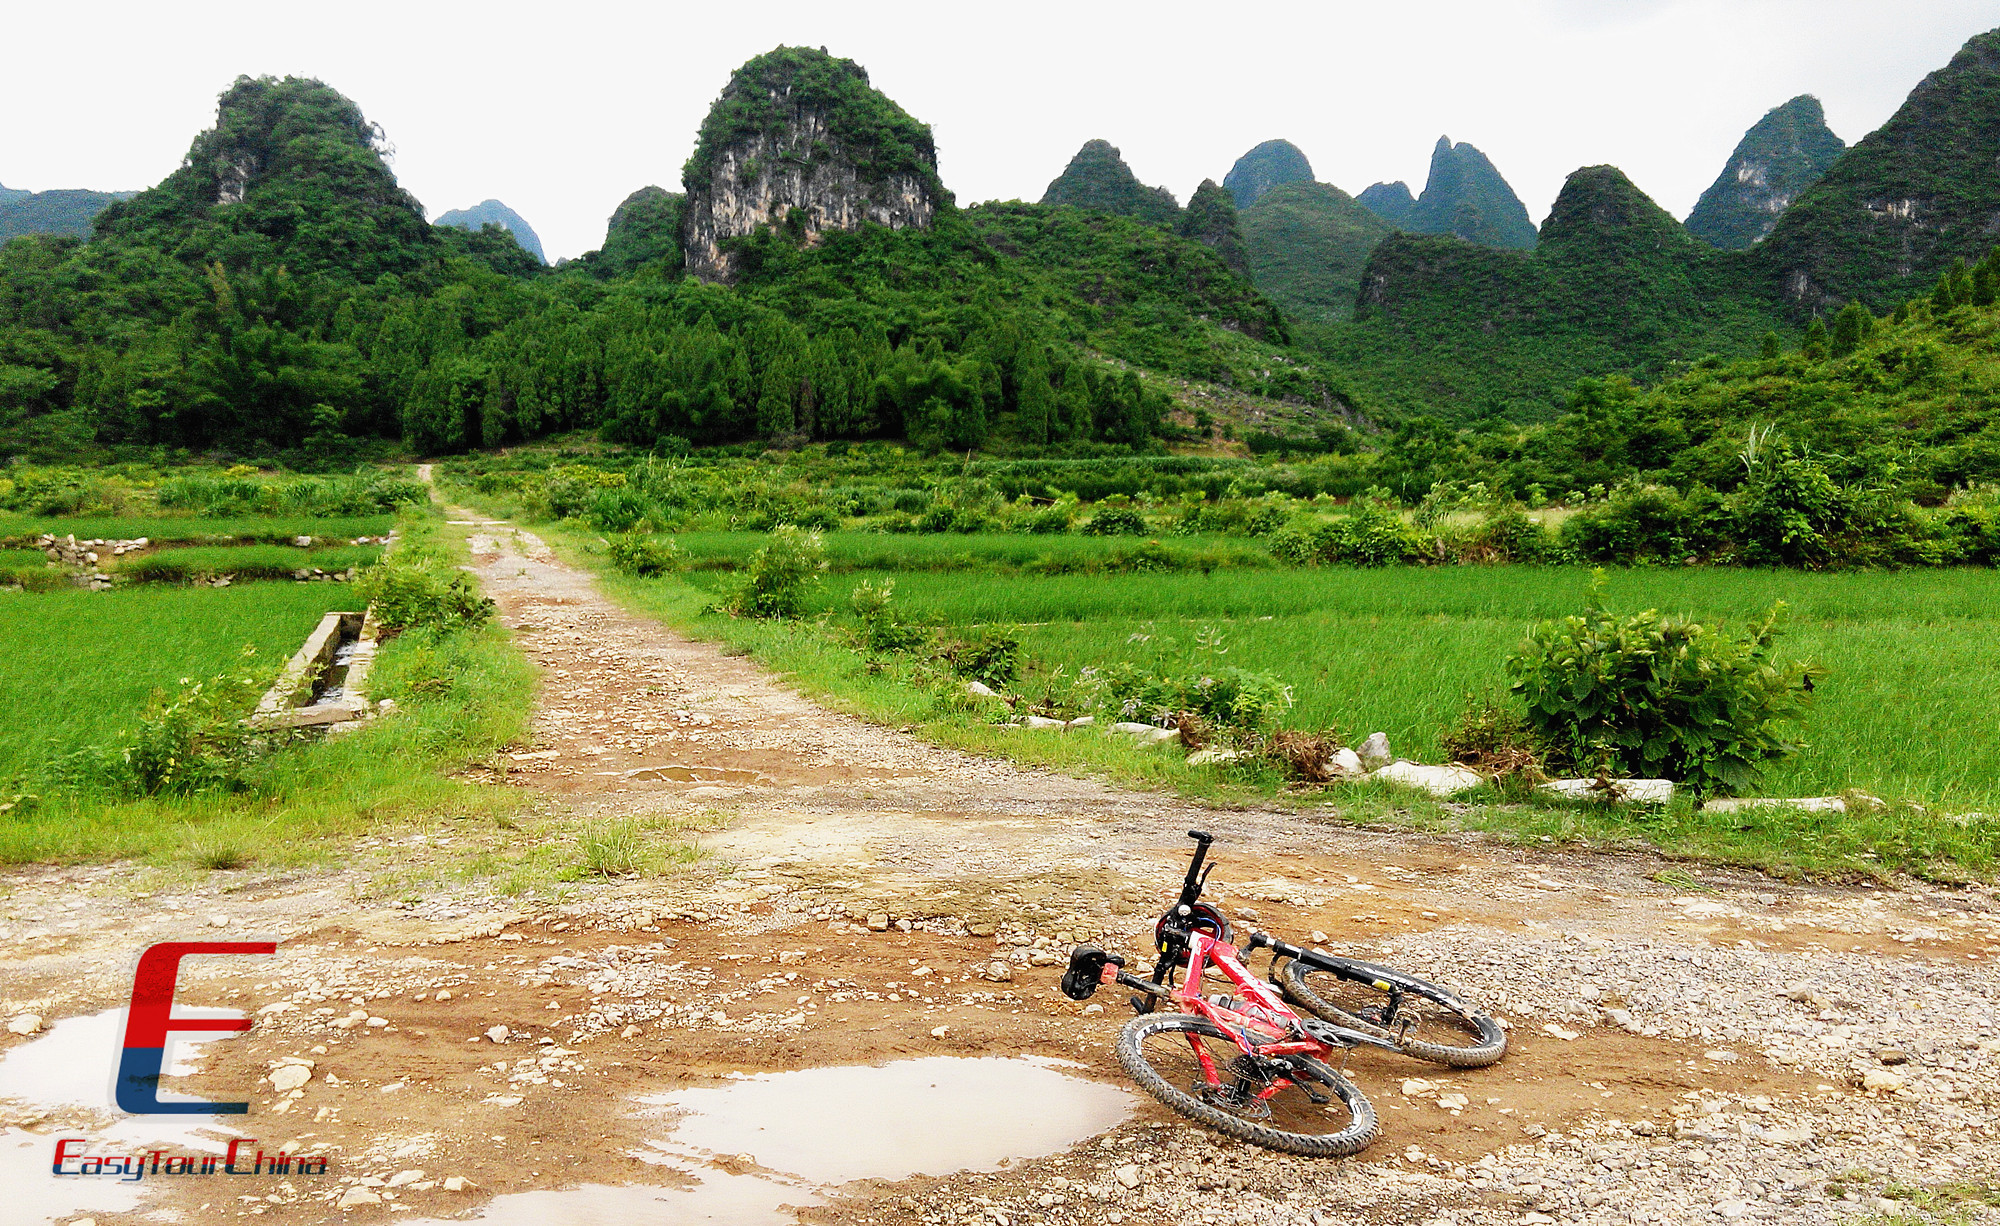 Biking in the Mountain Area of Guilin